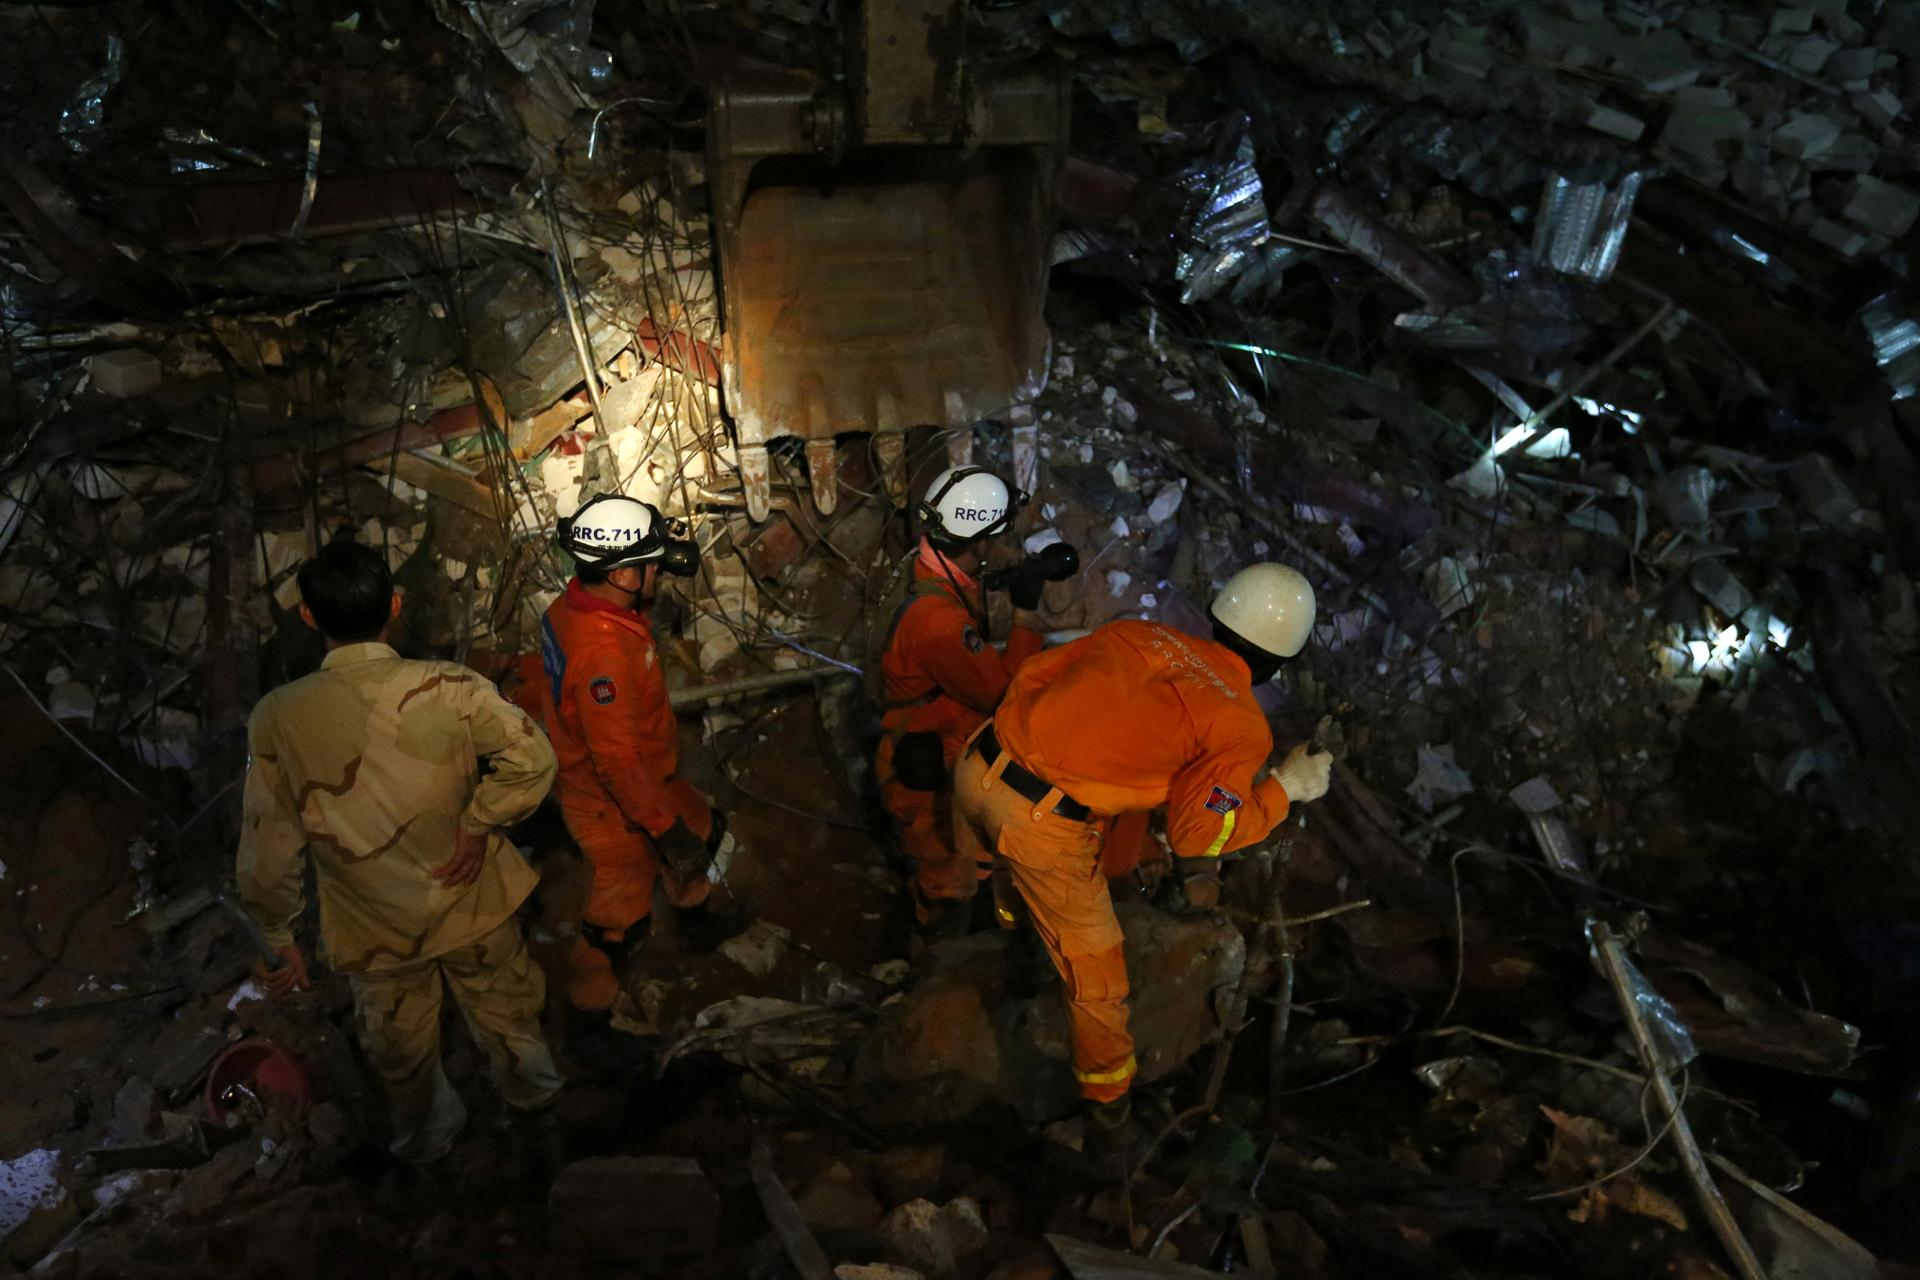 Thirteen dead, 23 injured in Cambodia building collapse